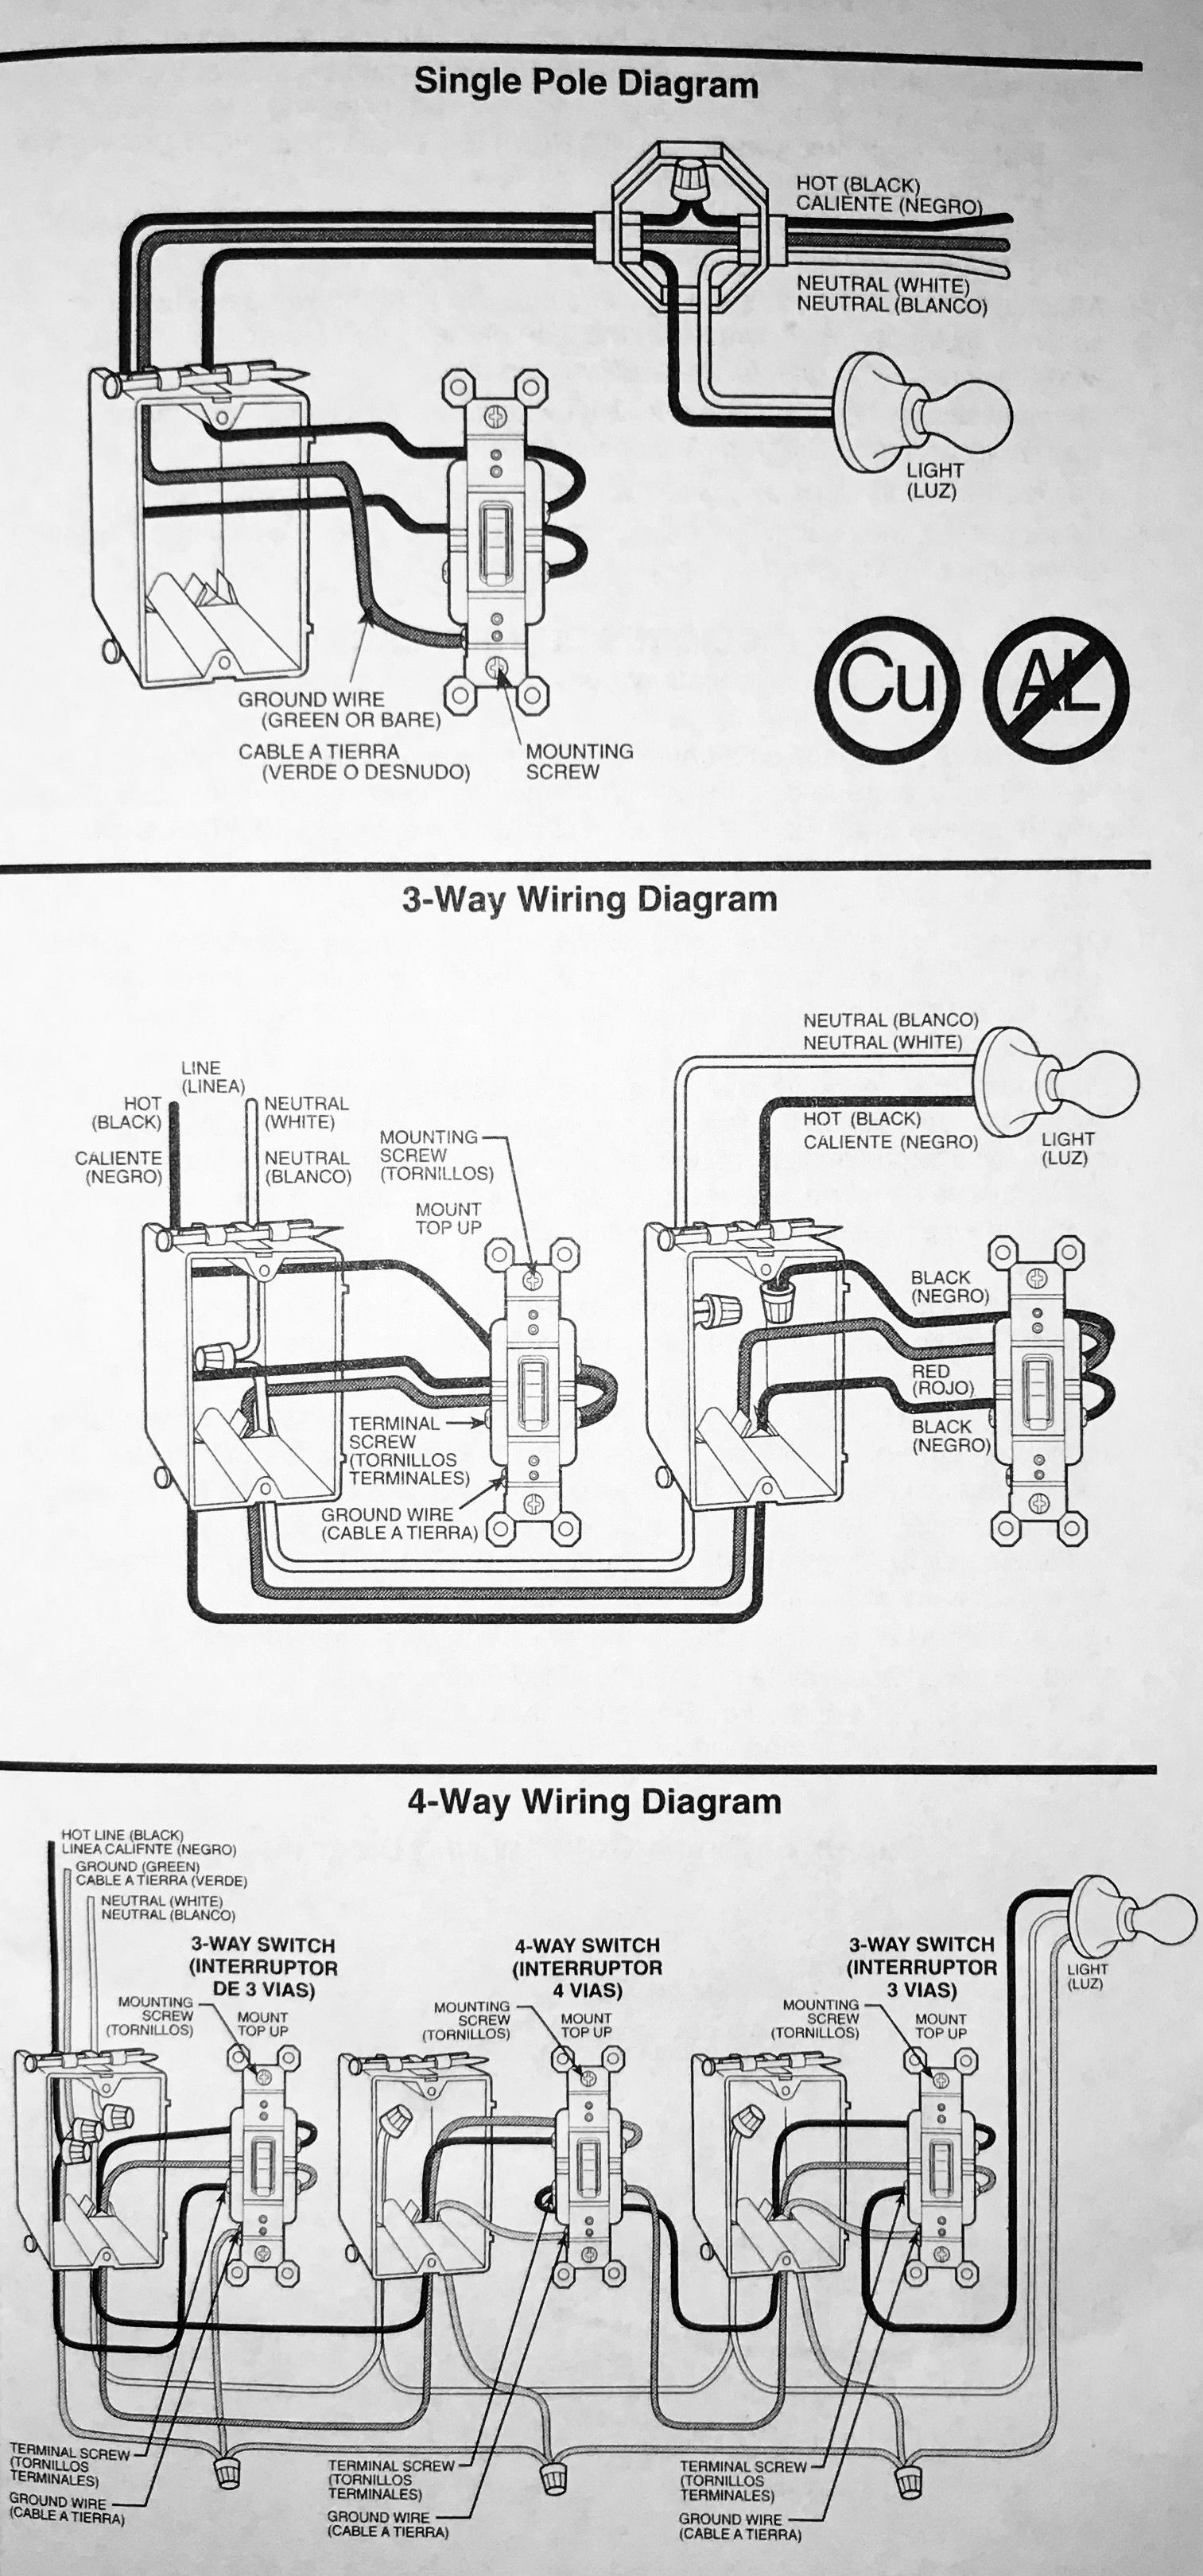 House 4 Way Wire Diagram Wiring Library Basic 4way Switch Installation Of Single Pole 3 Switches